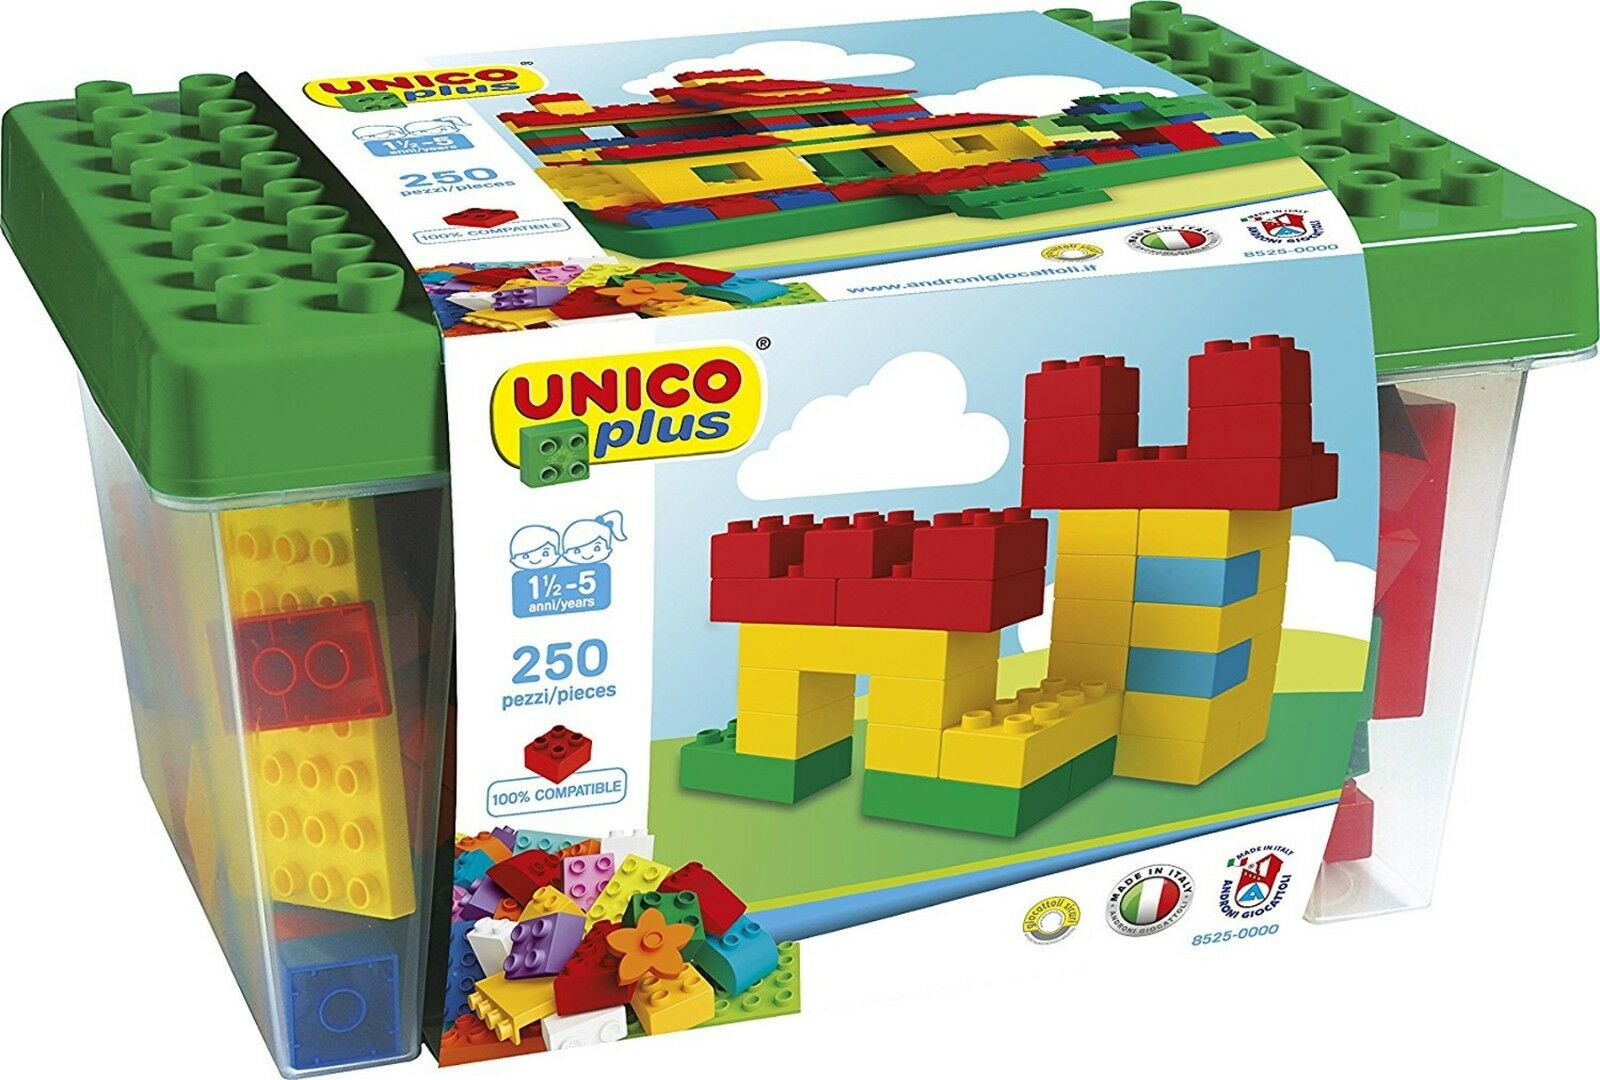 Unico Plus Big Box 250 Bausteine mit Platte kompatibel ab 1 5 Jahre 228065